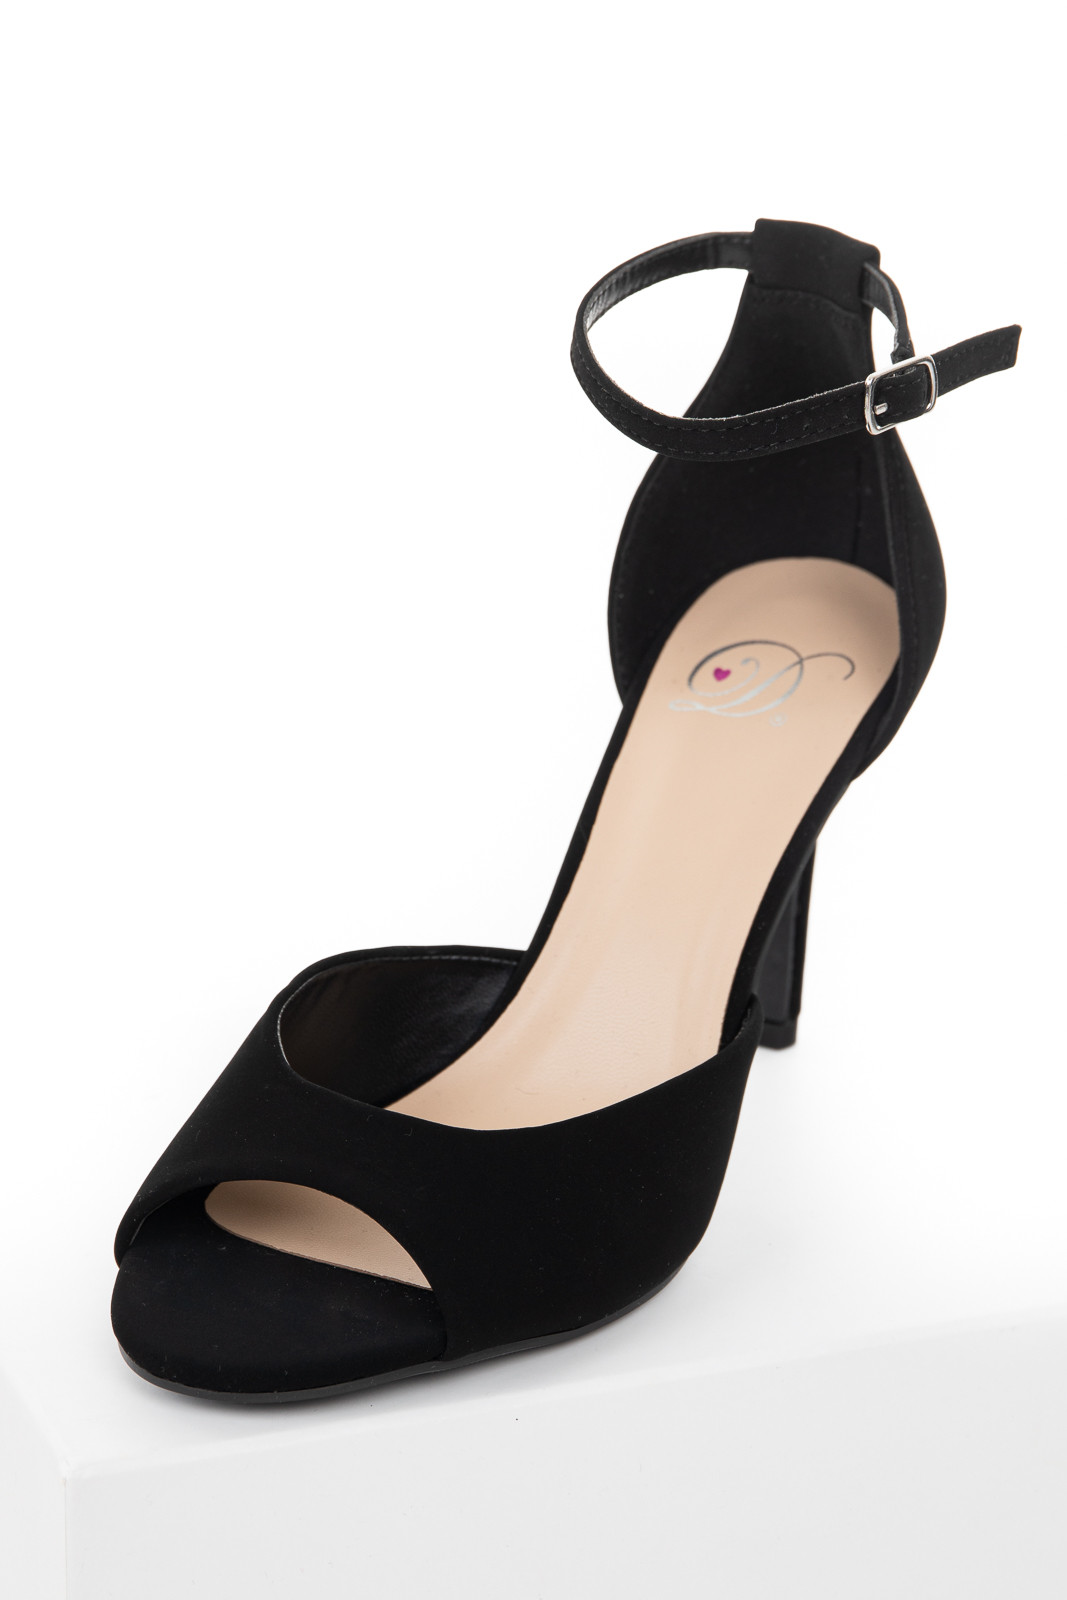 Black Faux Suede Peep Toe Heels with Adjustable Strap